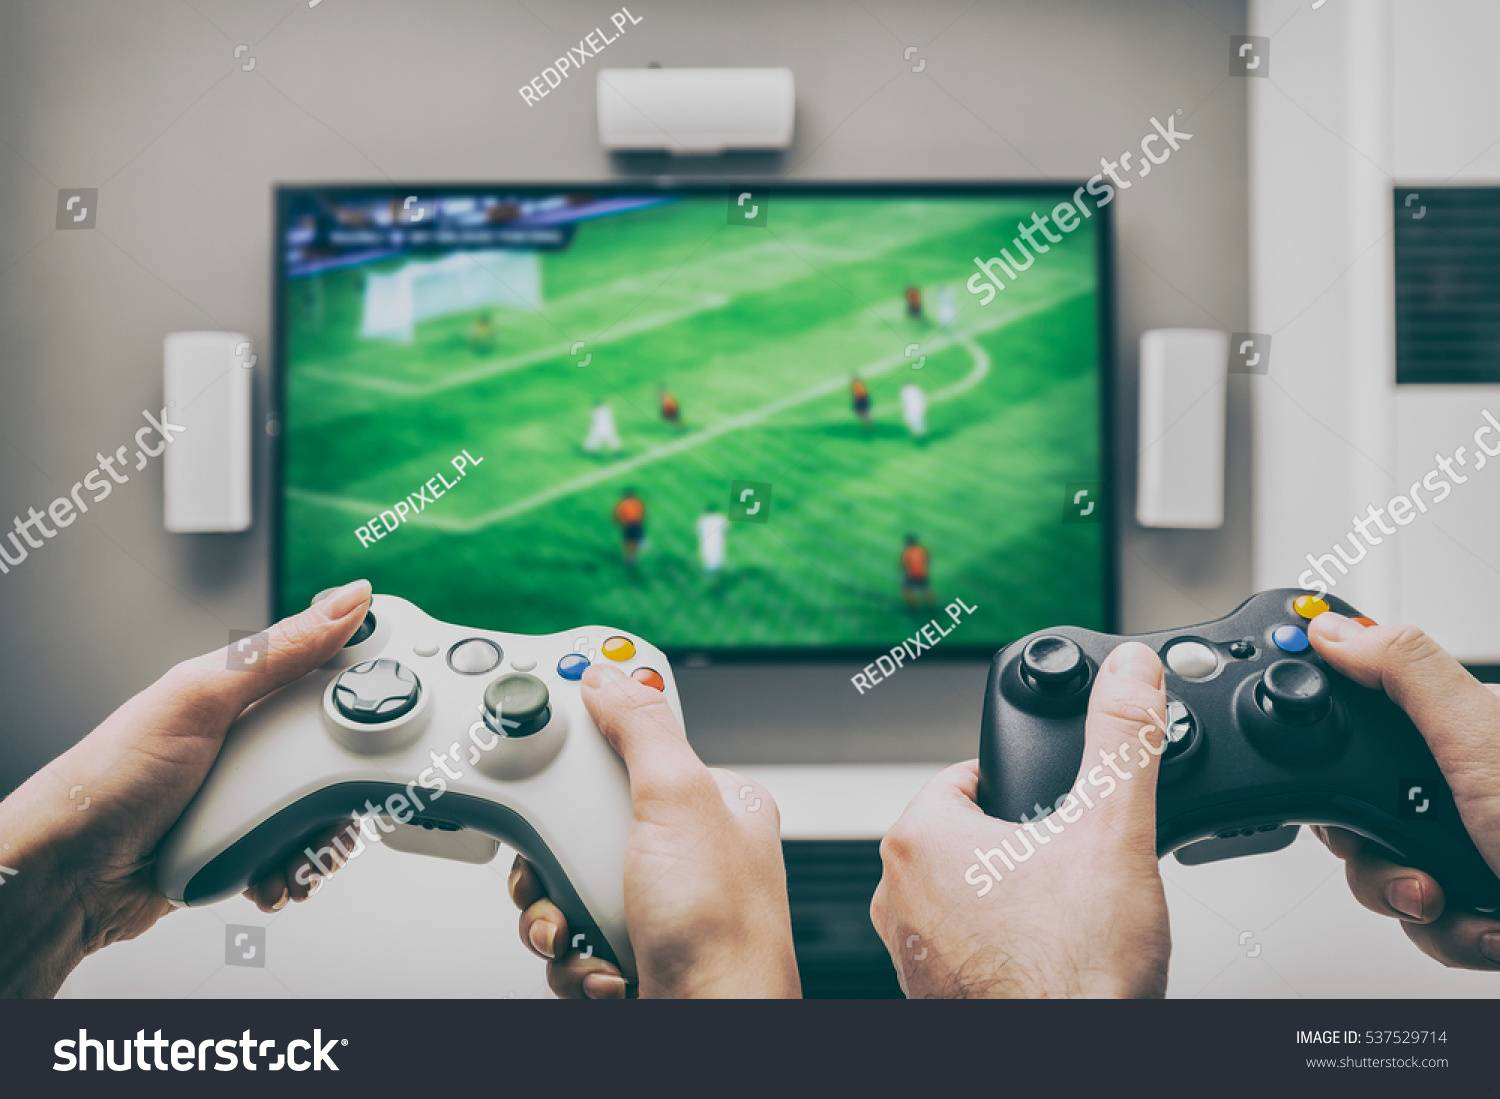 stock-photo-gaming-game-play-tv-fun-gamer-gamepad-guy-controller-video-console-playing-player-holding-hobby-537529714.jpg